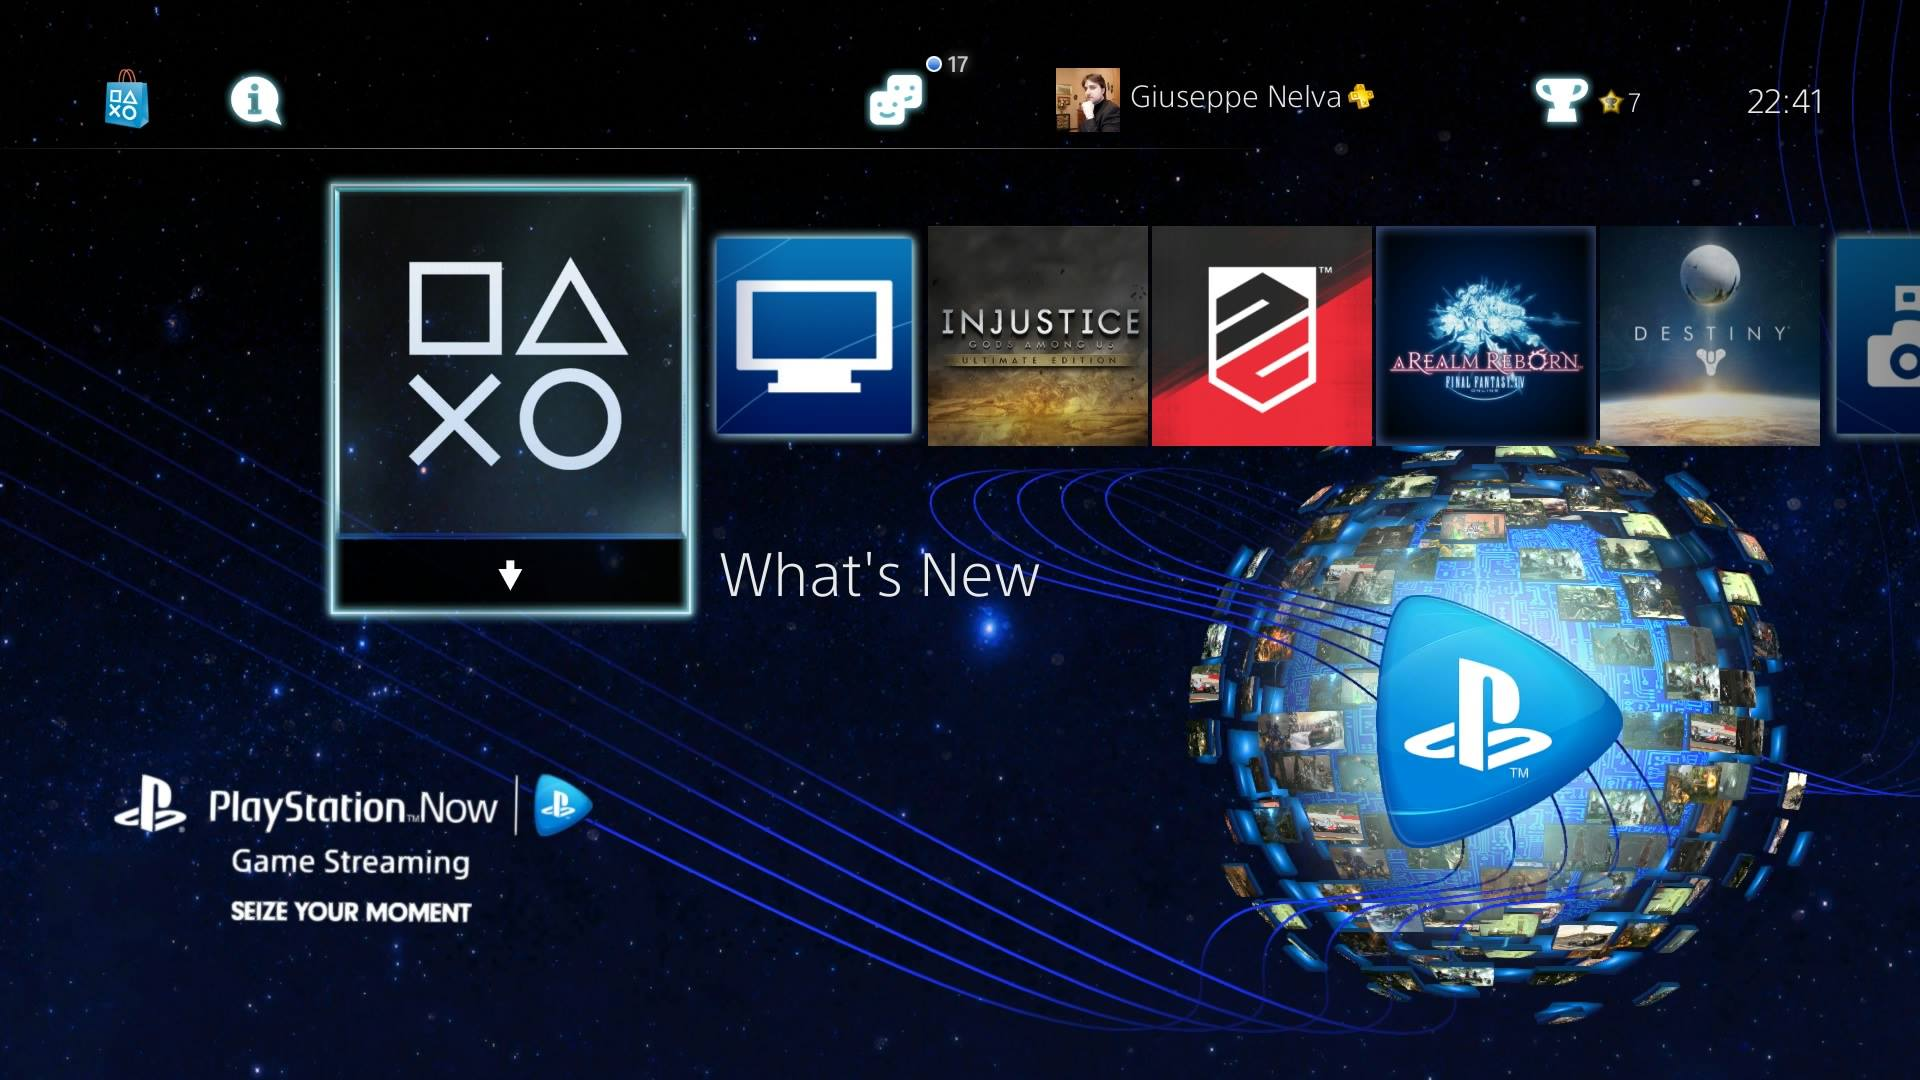 Free PlayStation Now PS4 Dynamic Theme Just Released By Sony On The PSN Screenshots Inside